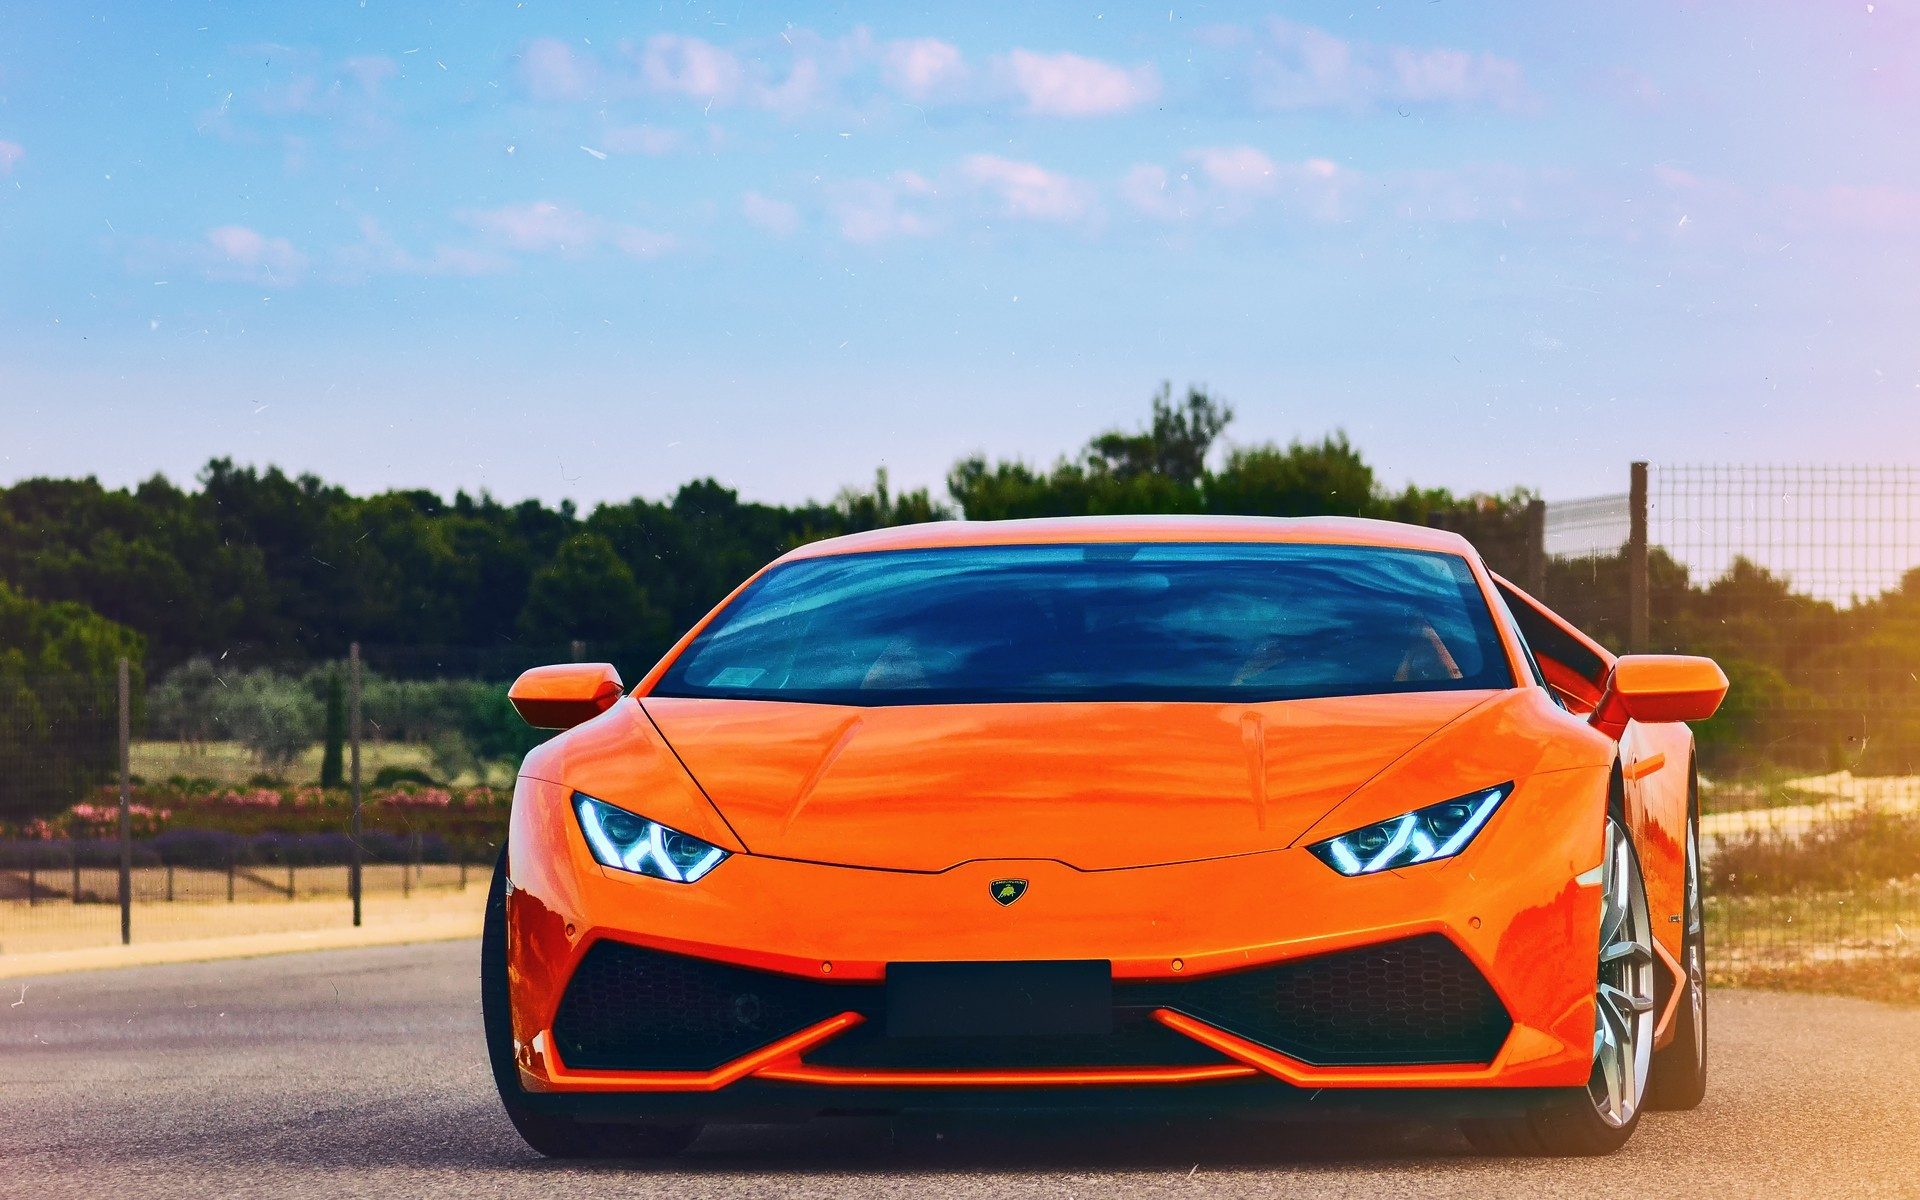 Lamborghini Huracan Lp610 Image Download Wallpaper Laptop HD 1920x1200